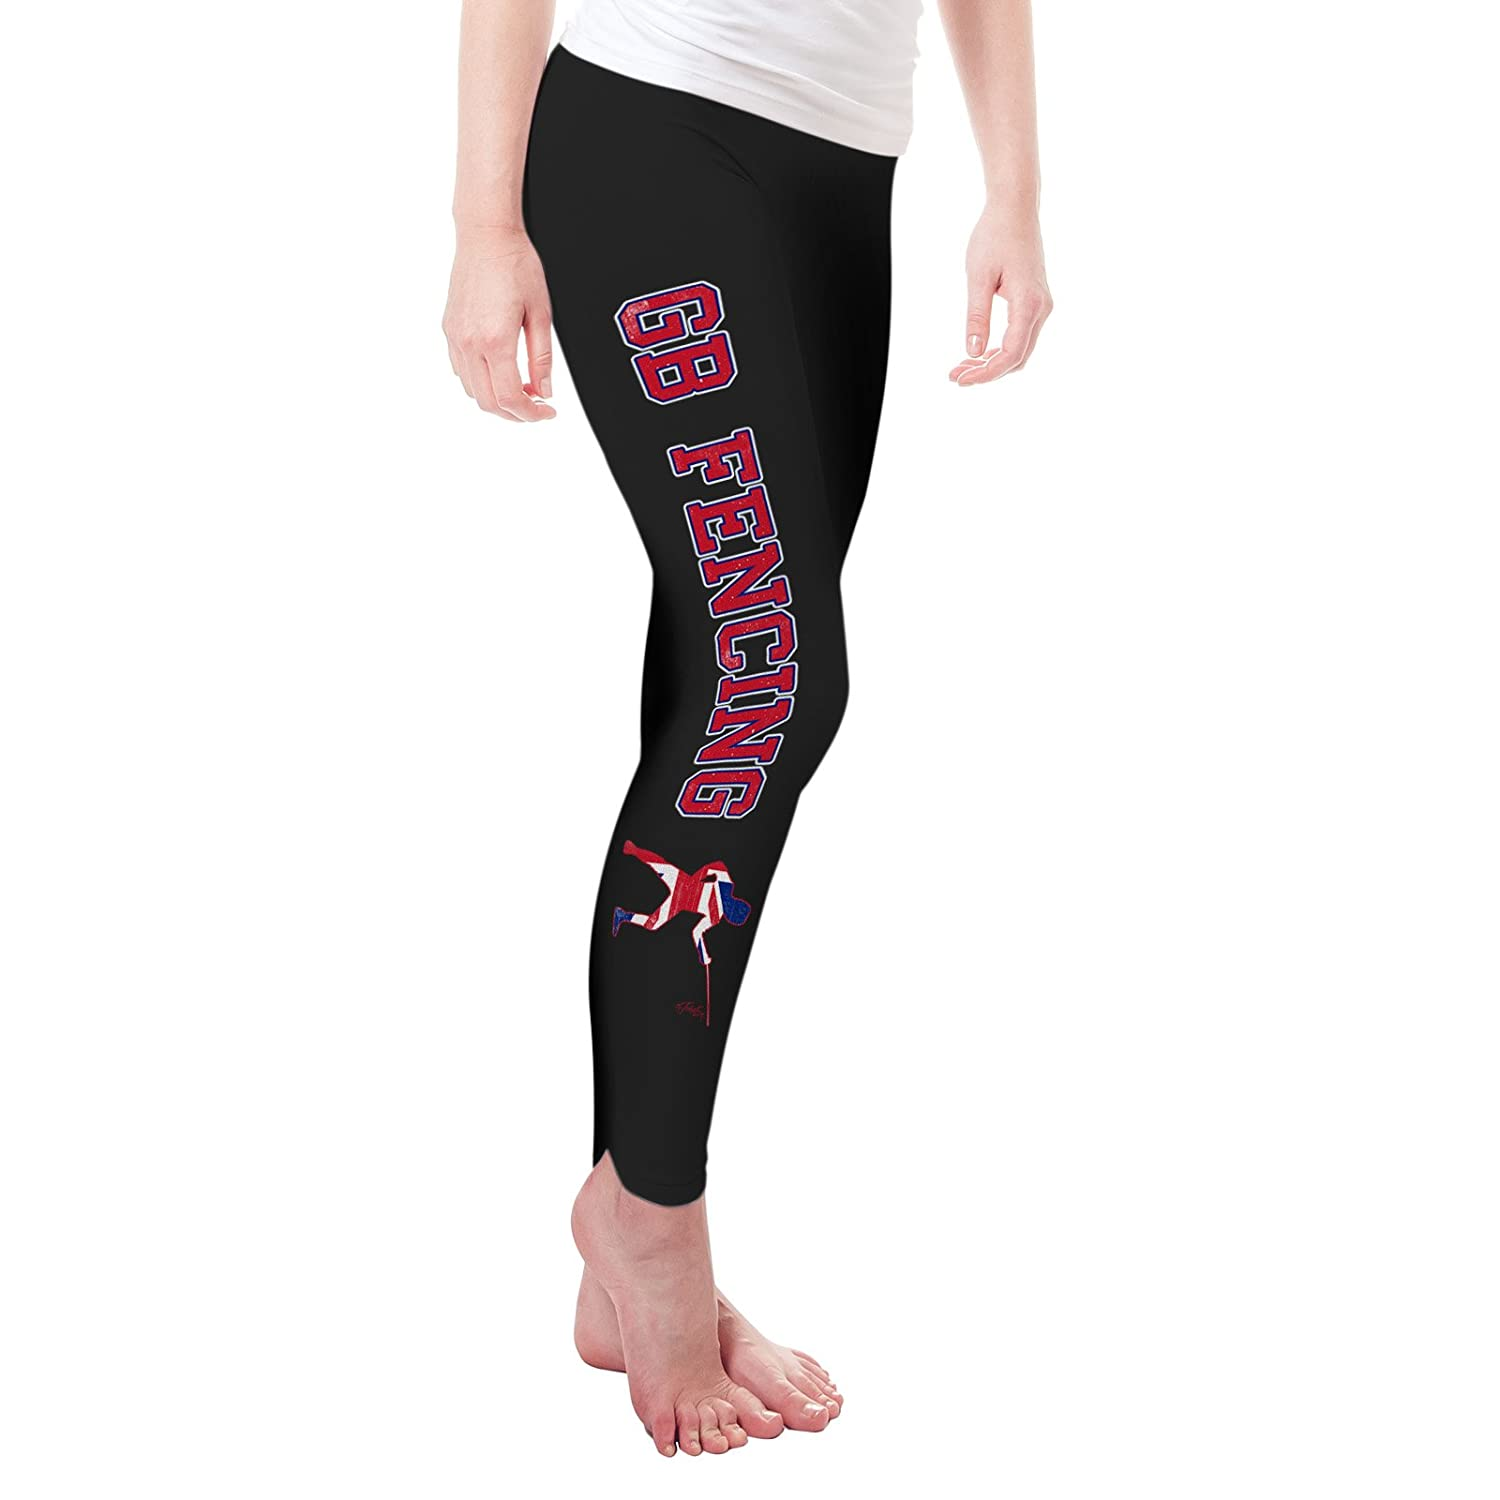 Twisted Envy GB Boxing Baby Novelty Leggings